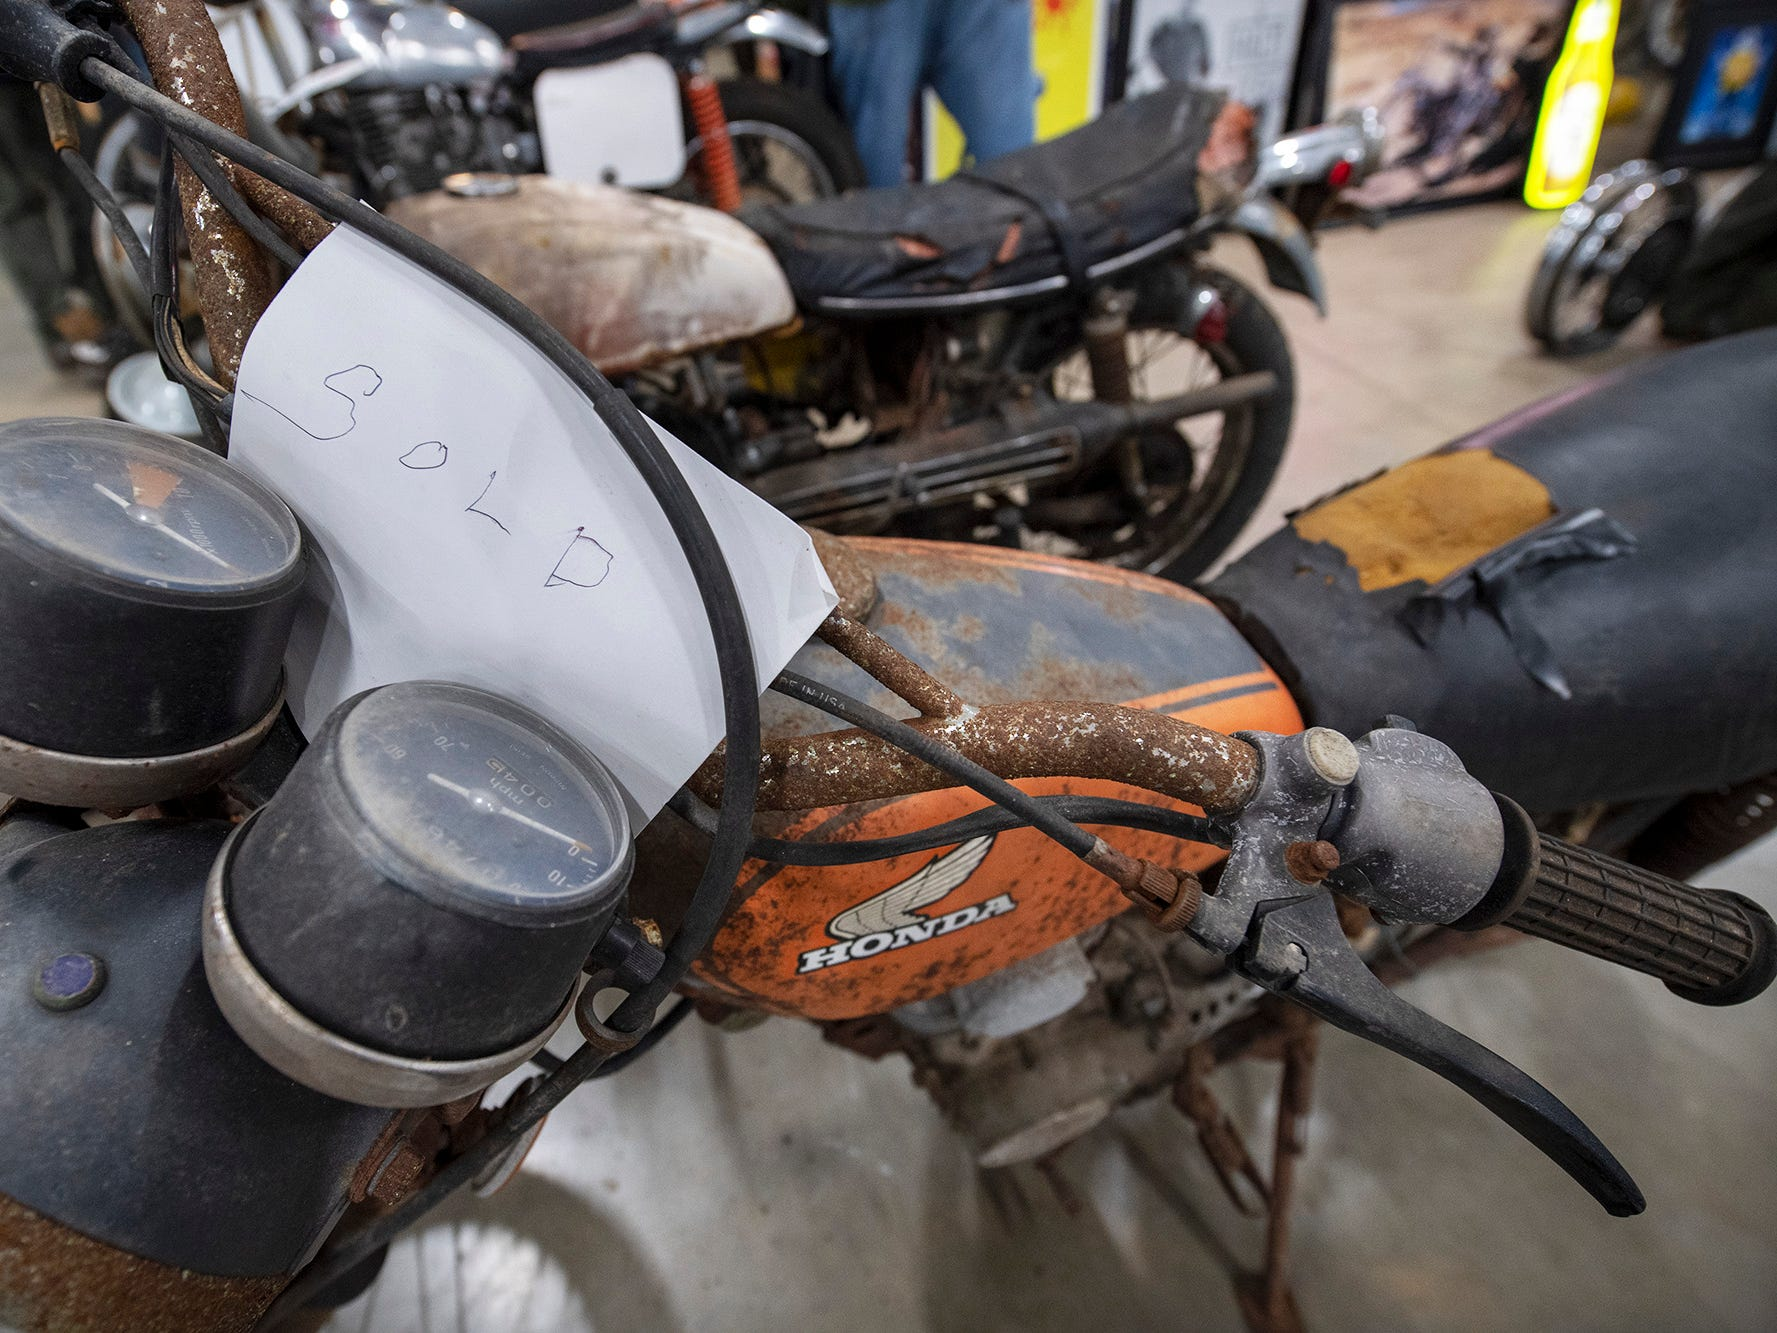 A well weathered Honda motorcycle has a sold sign on it during the The Potomac Vintage Riders' York Swap Meet Sunday January 27, 2019 at the York Expo Center.